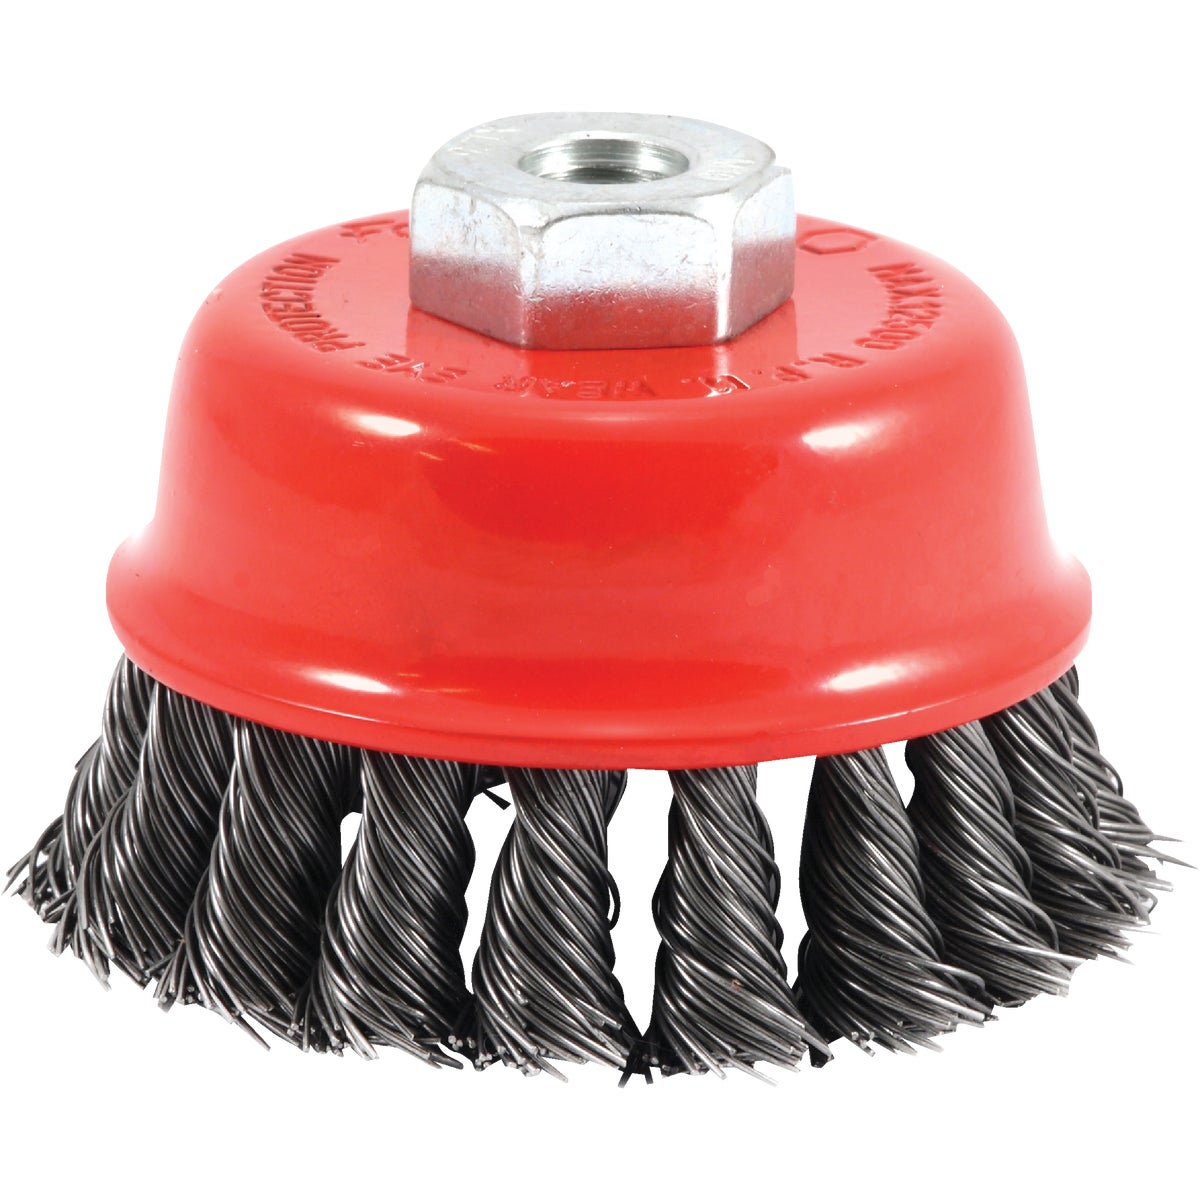 "2-3/4"" KNOTTED CUP BRUSH - 72782 by Forney Industries"